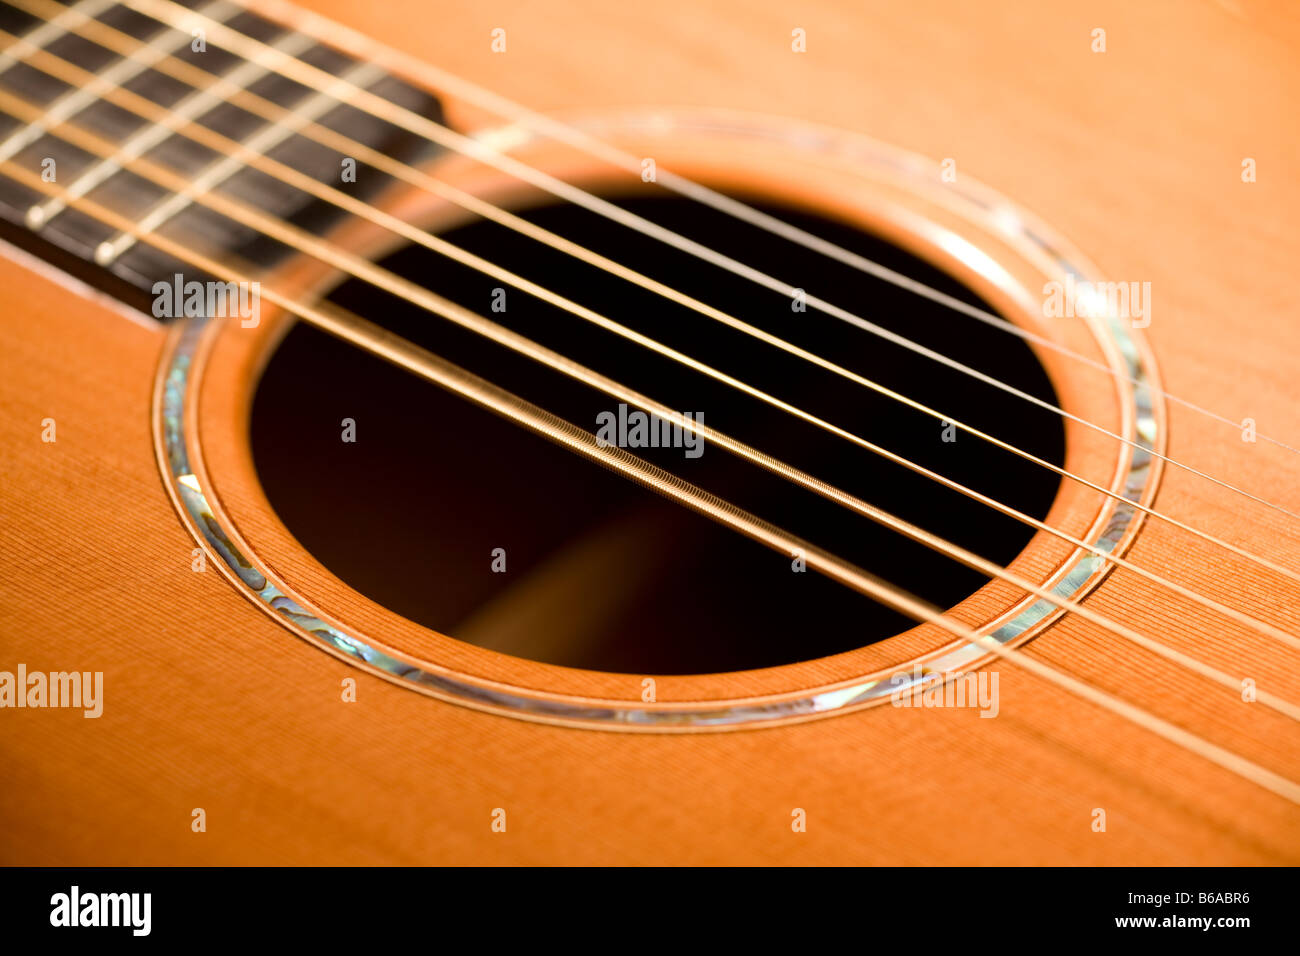 close up of sound hole of acoustic guitar with vibrating strings stock photo royalty free image. Black Bedroom Furniture Sets. Home Design Ideas